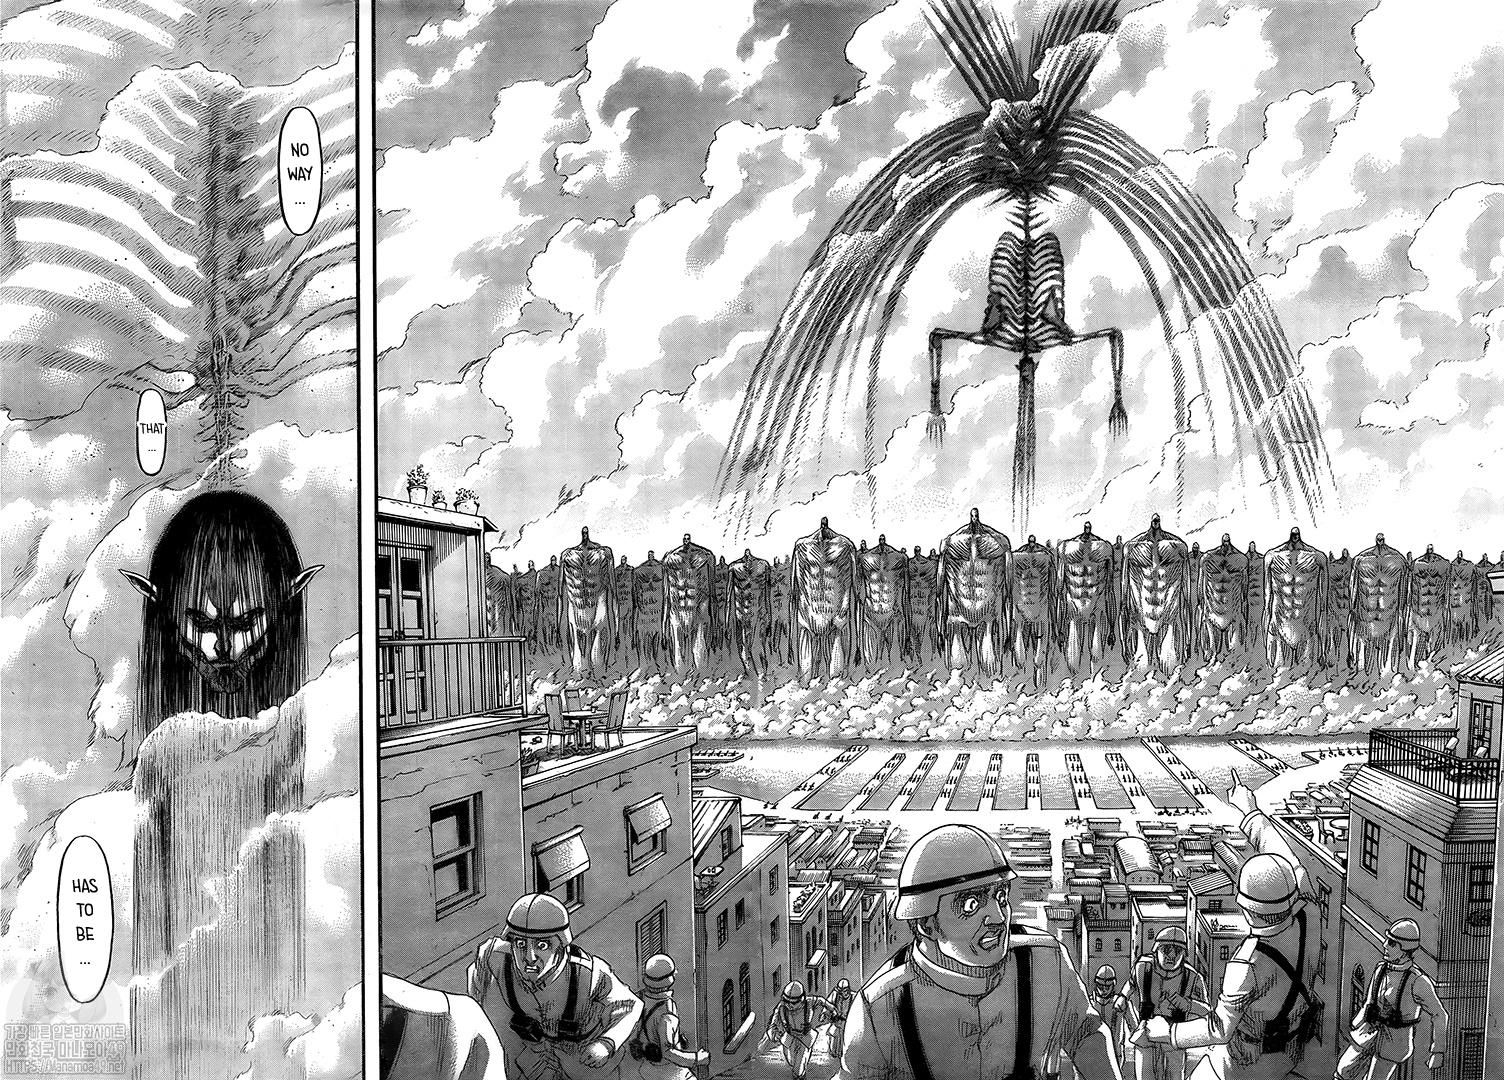 Shingeki No Kyojin Chapter 130 In 2020 Attack On Titan Anime Attack On Titan Tumblr Attack On Titan Art